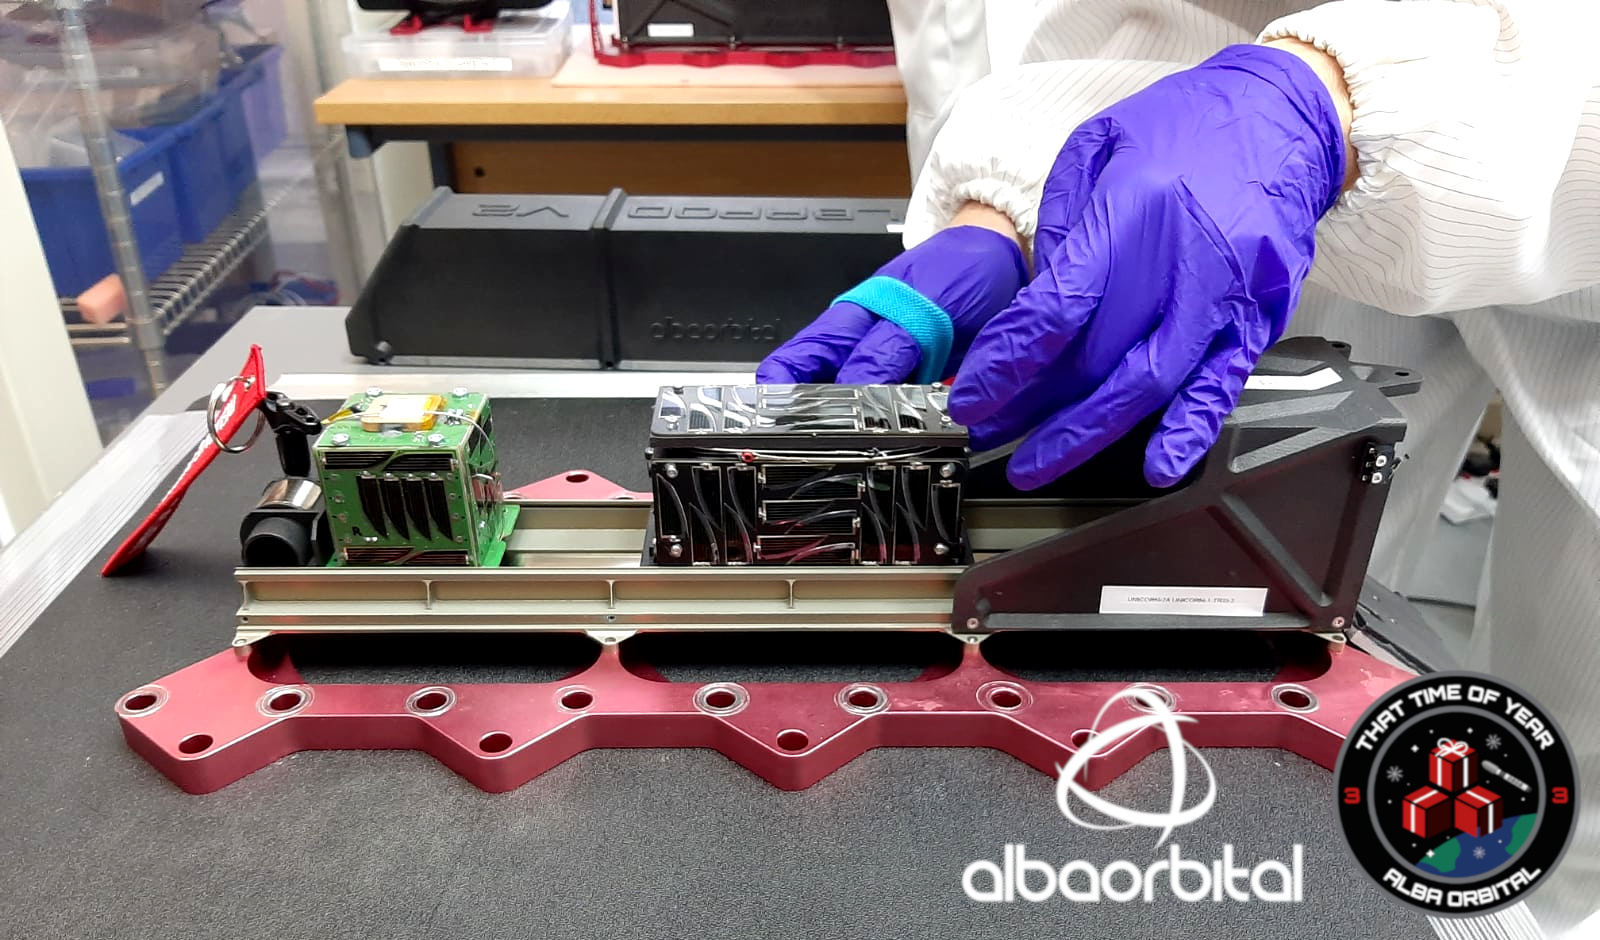 Alba Orbital has successfully integrated nine PocketQube satellites into its AlbaPod v2 deployer. Image via CRP Technology.